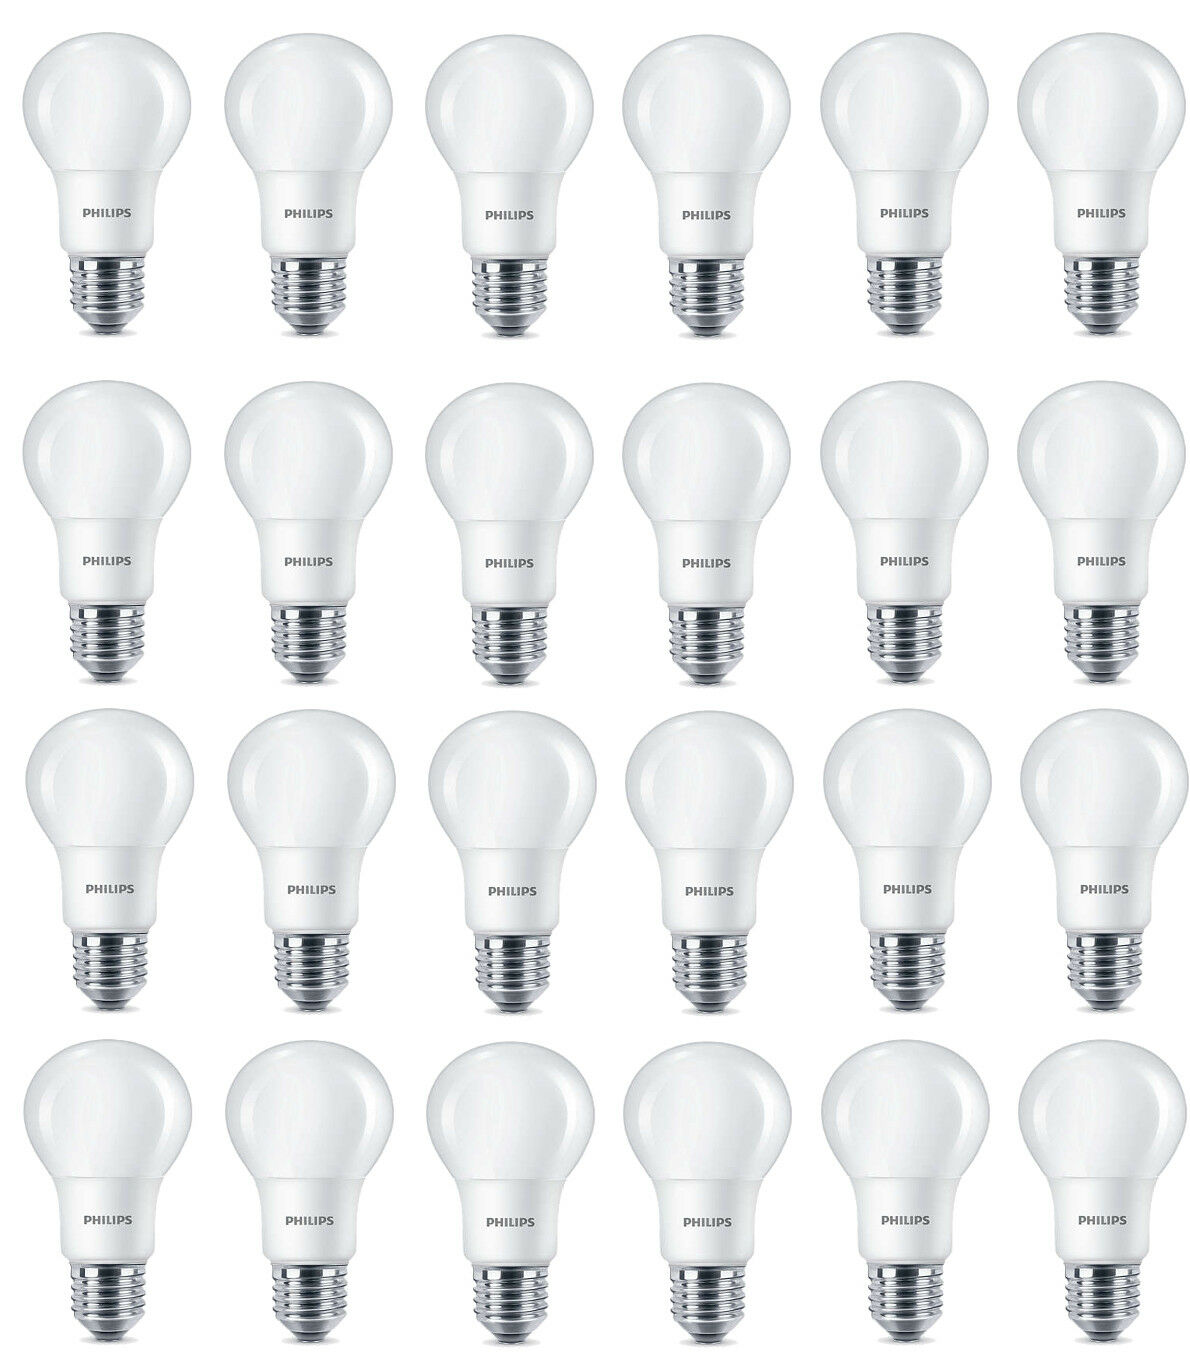 24 x Philips LED Frosted e27 edison screw 40w cálido blancoo light bulbs lamp 470lm